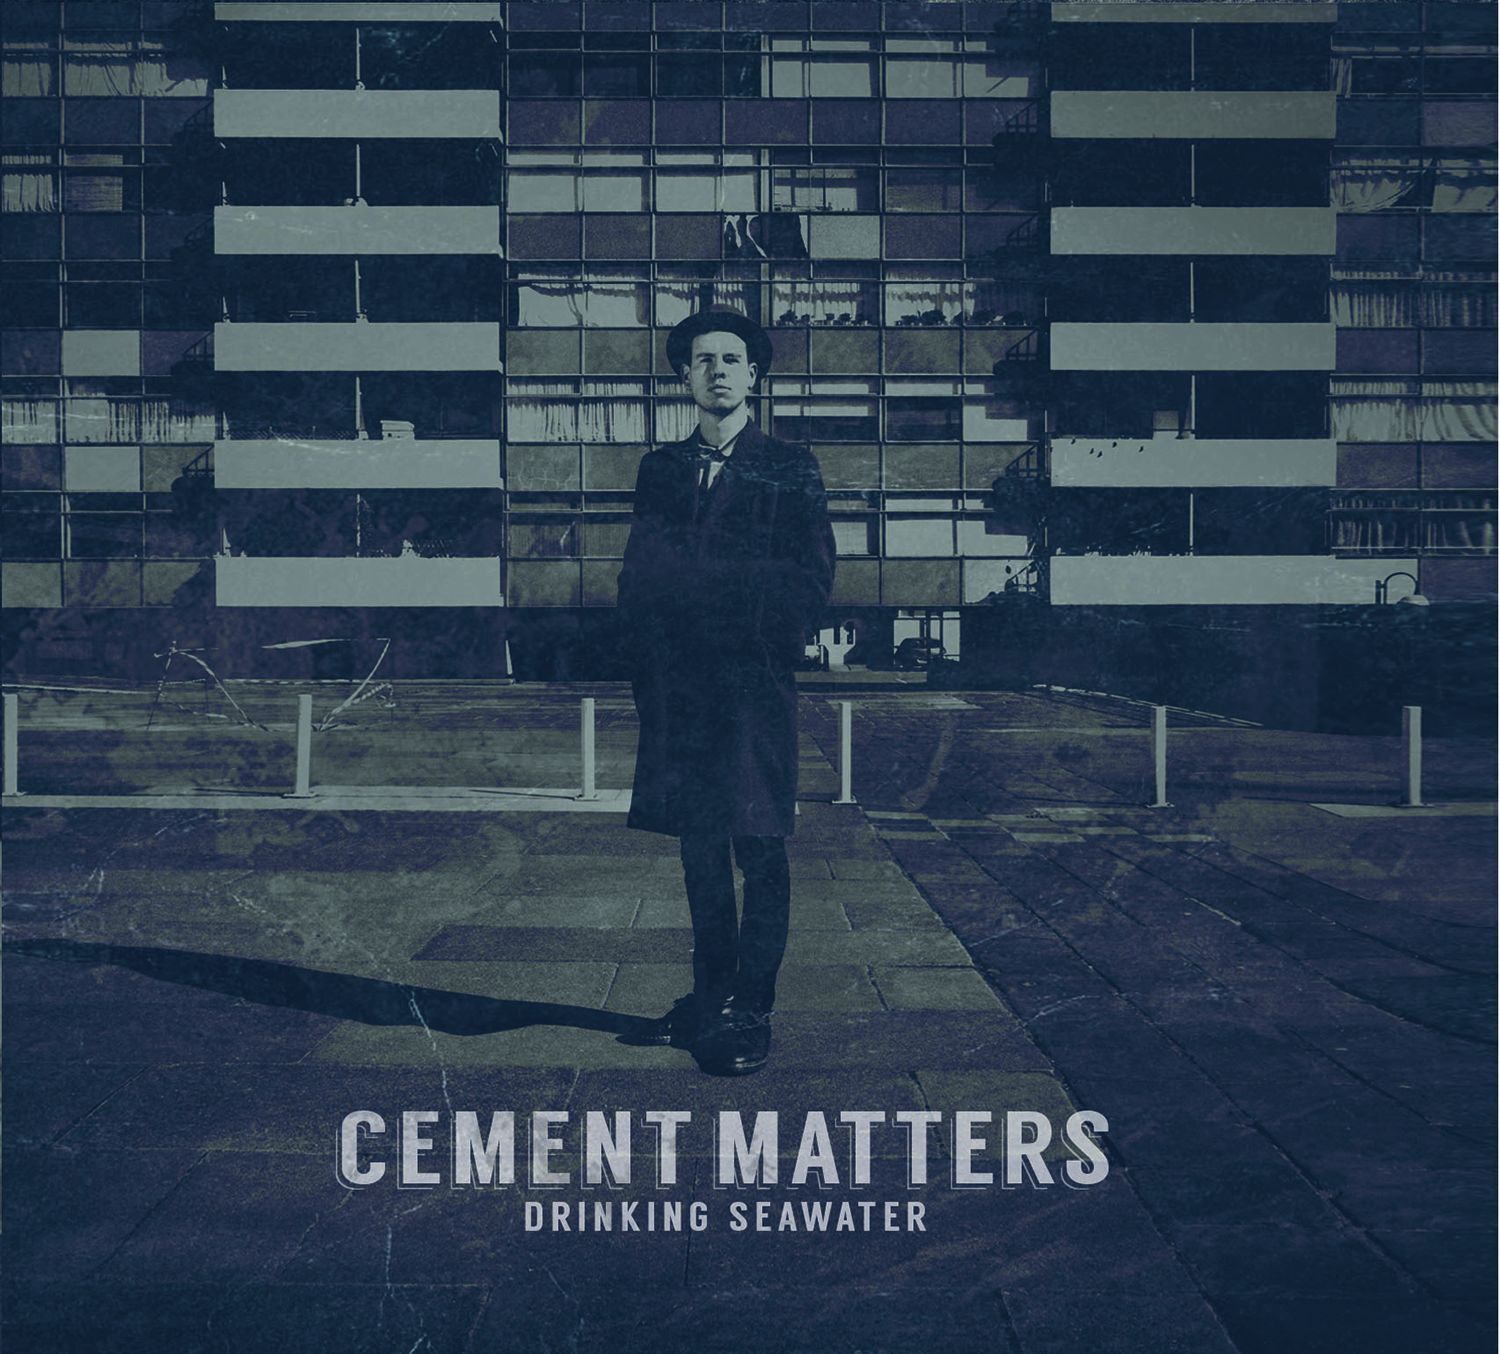 CEMENT MATTERS - DRINKING SEAWATER